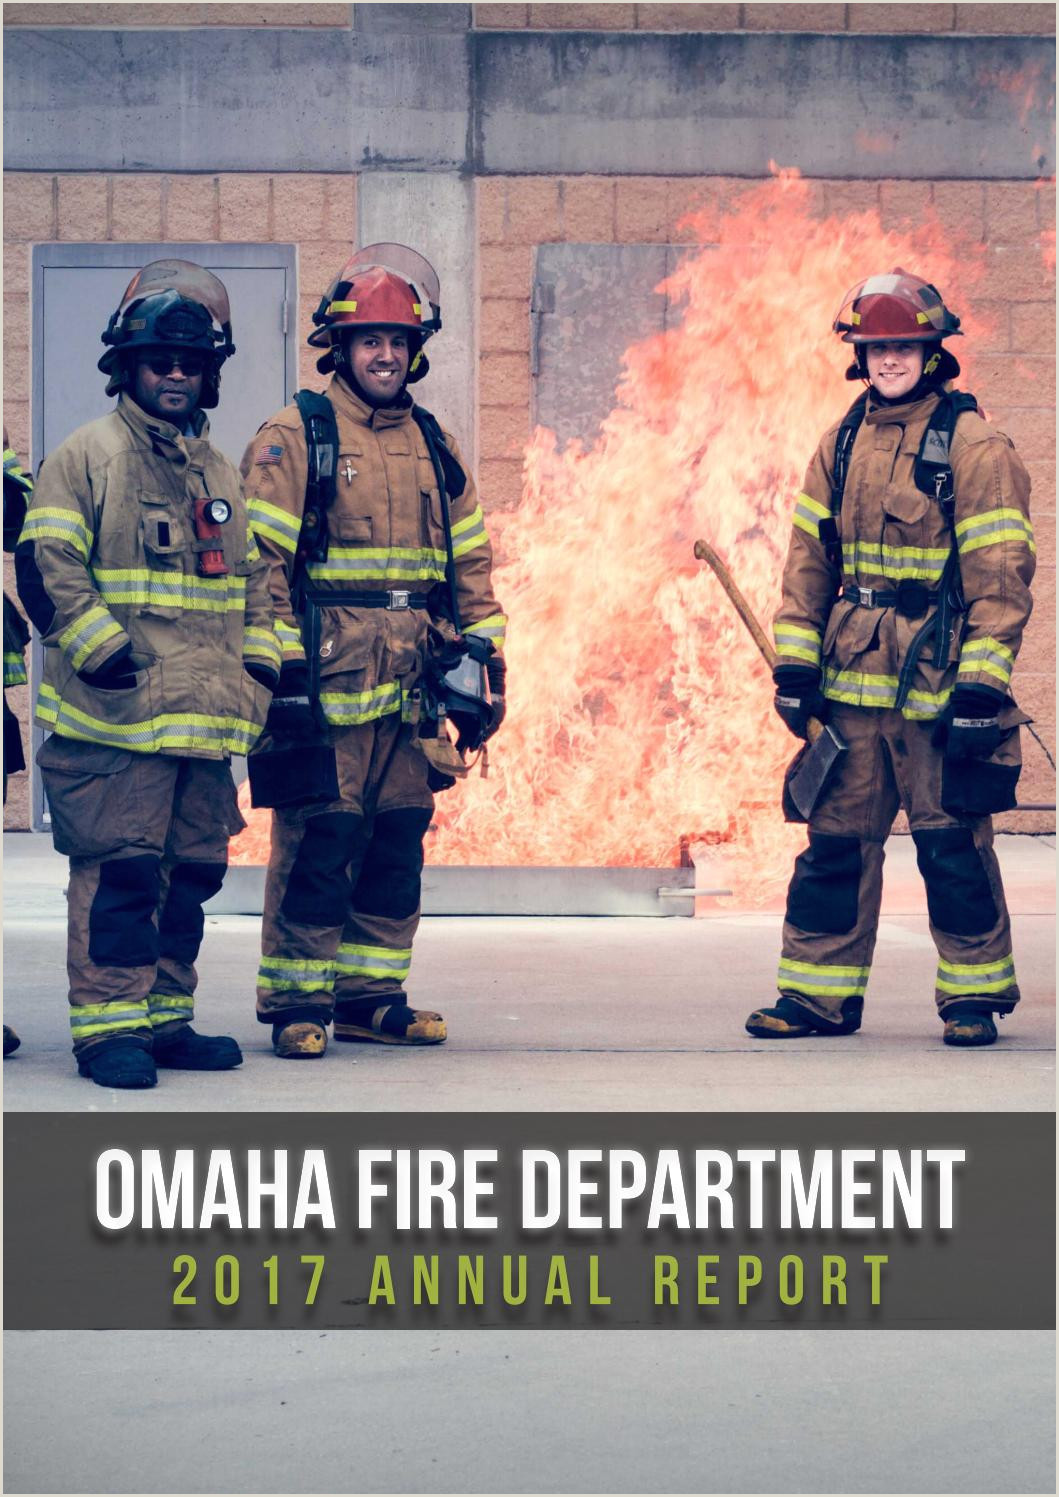 2017 Omaha Fire Department Annual Report by Omaha Fire